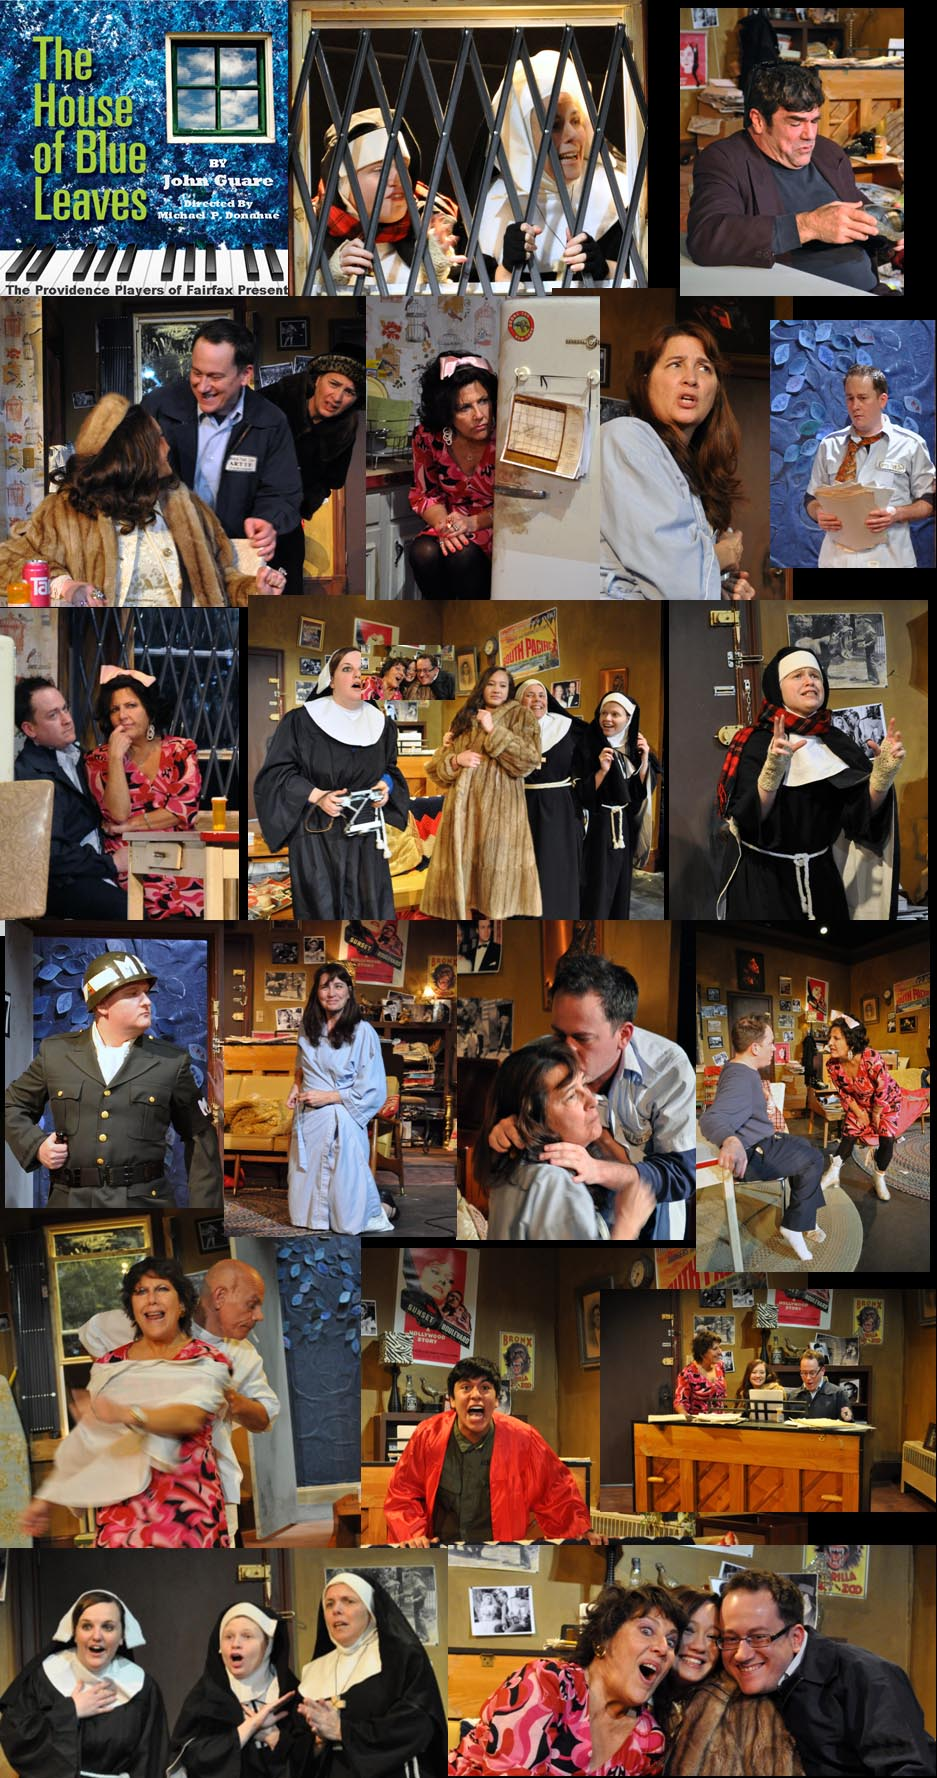 Production Photos of PPF's The House of Blue Leaves Photos by Chip Gertzog